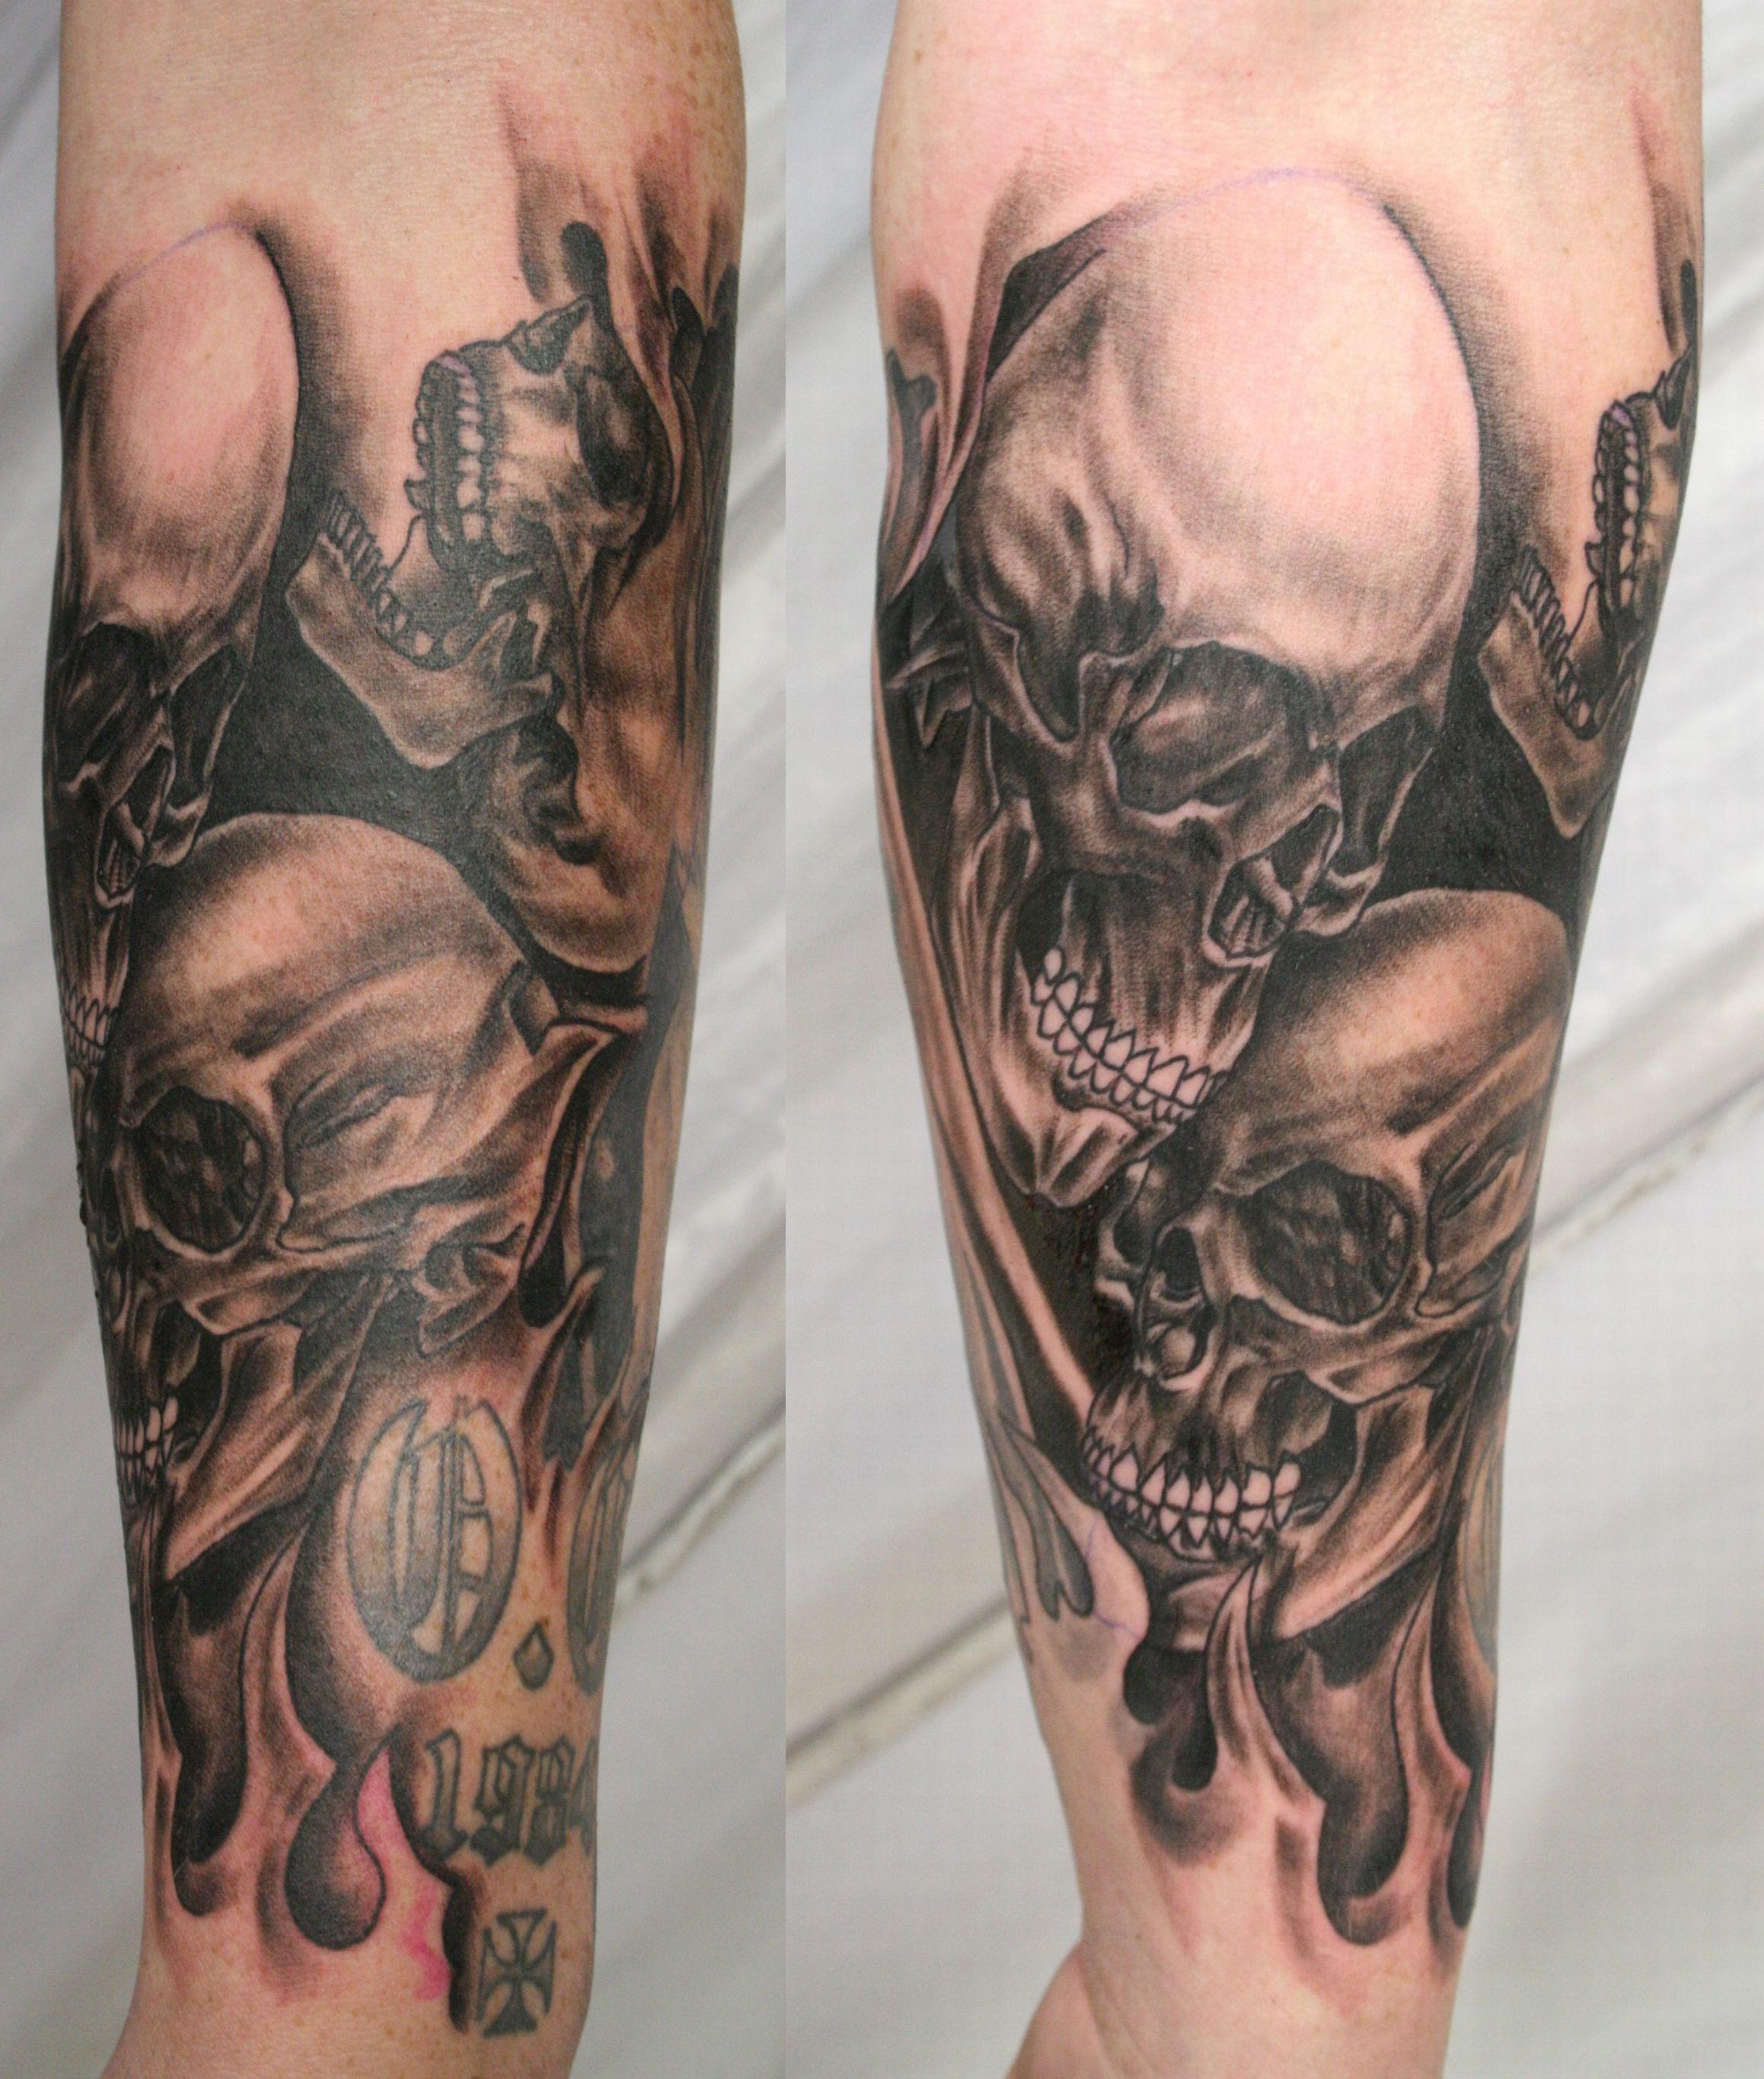 Skull tattoos designs ideas and meaning tattoos for you for Forearm tattoo sleeves